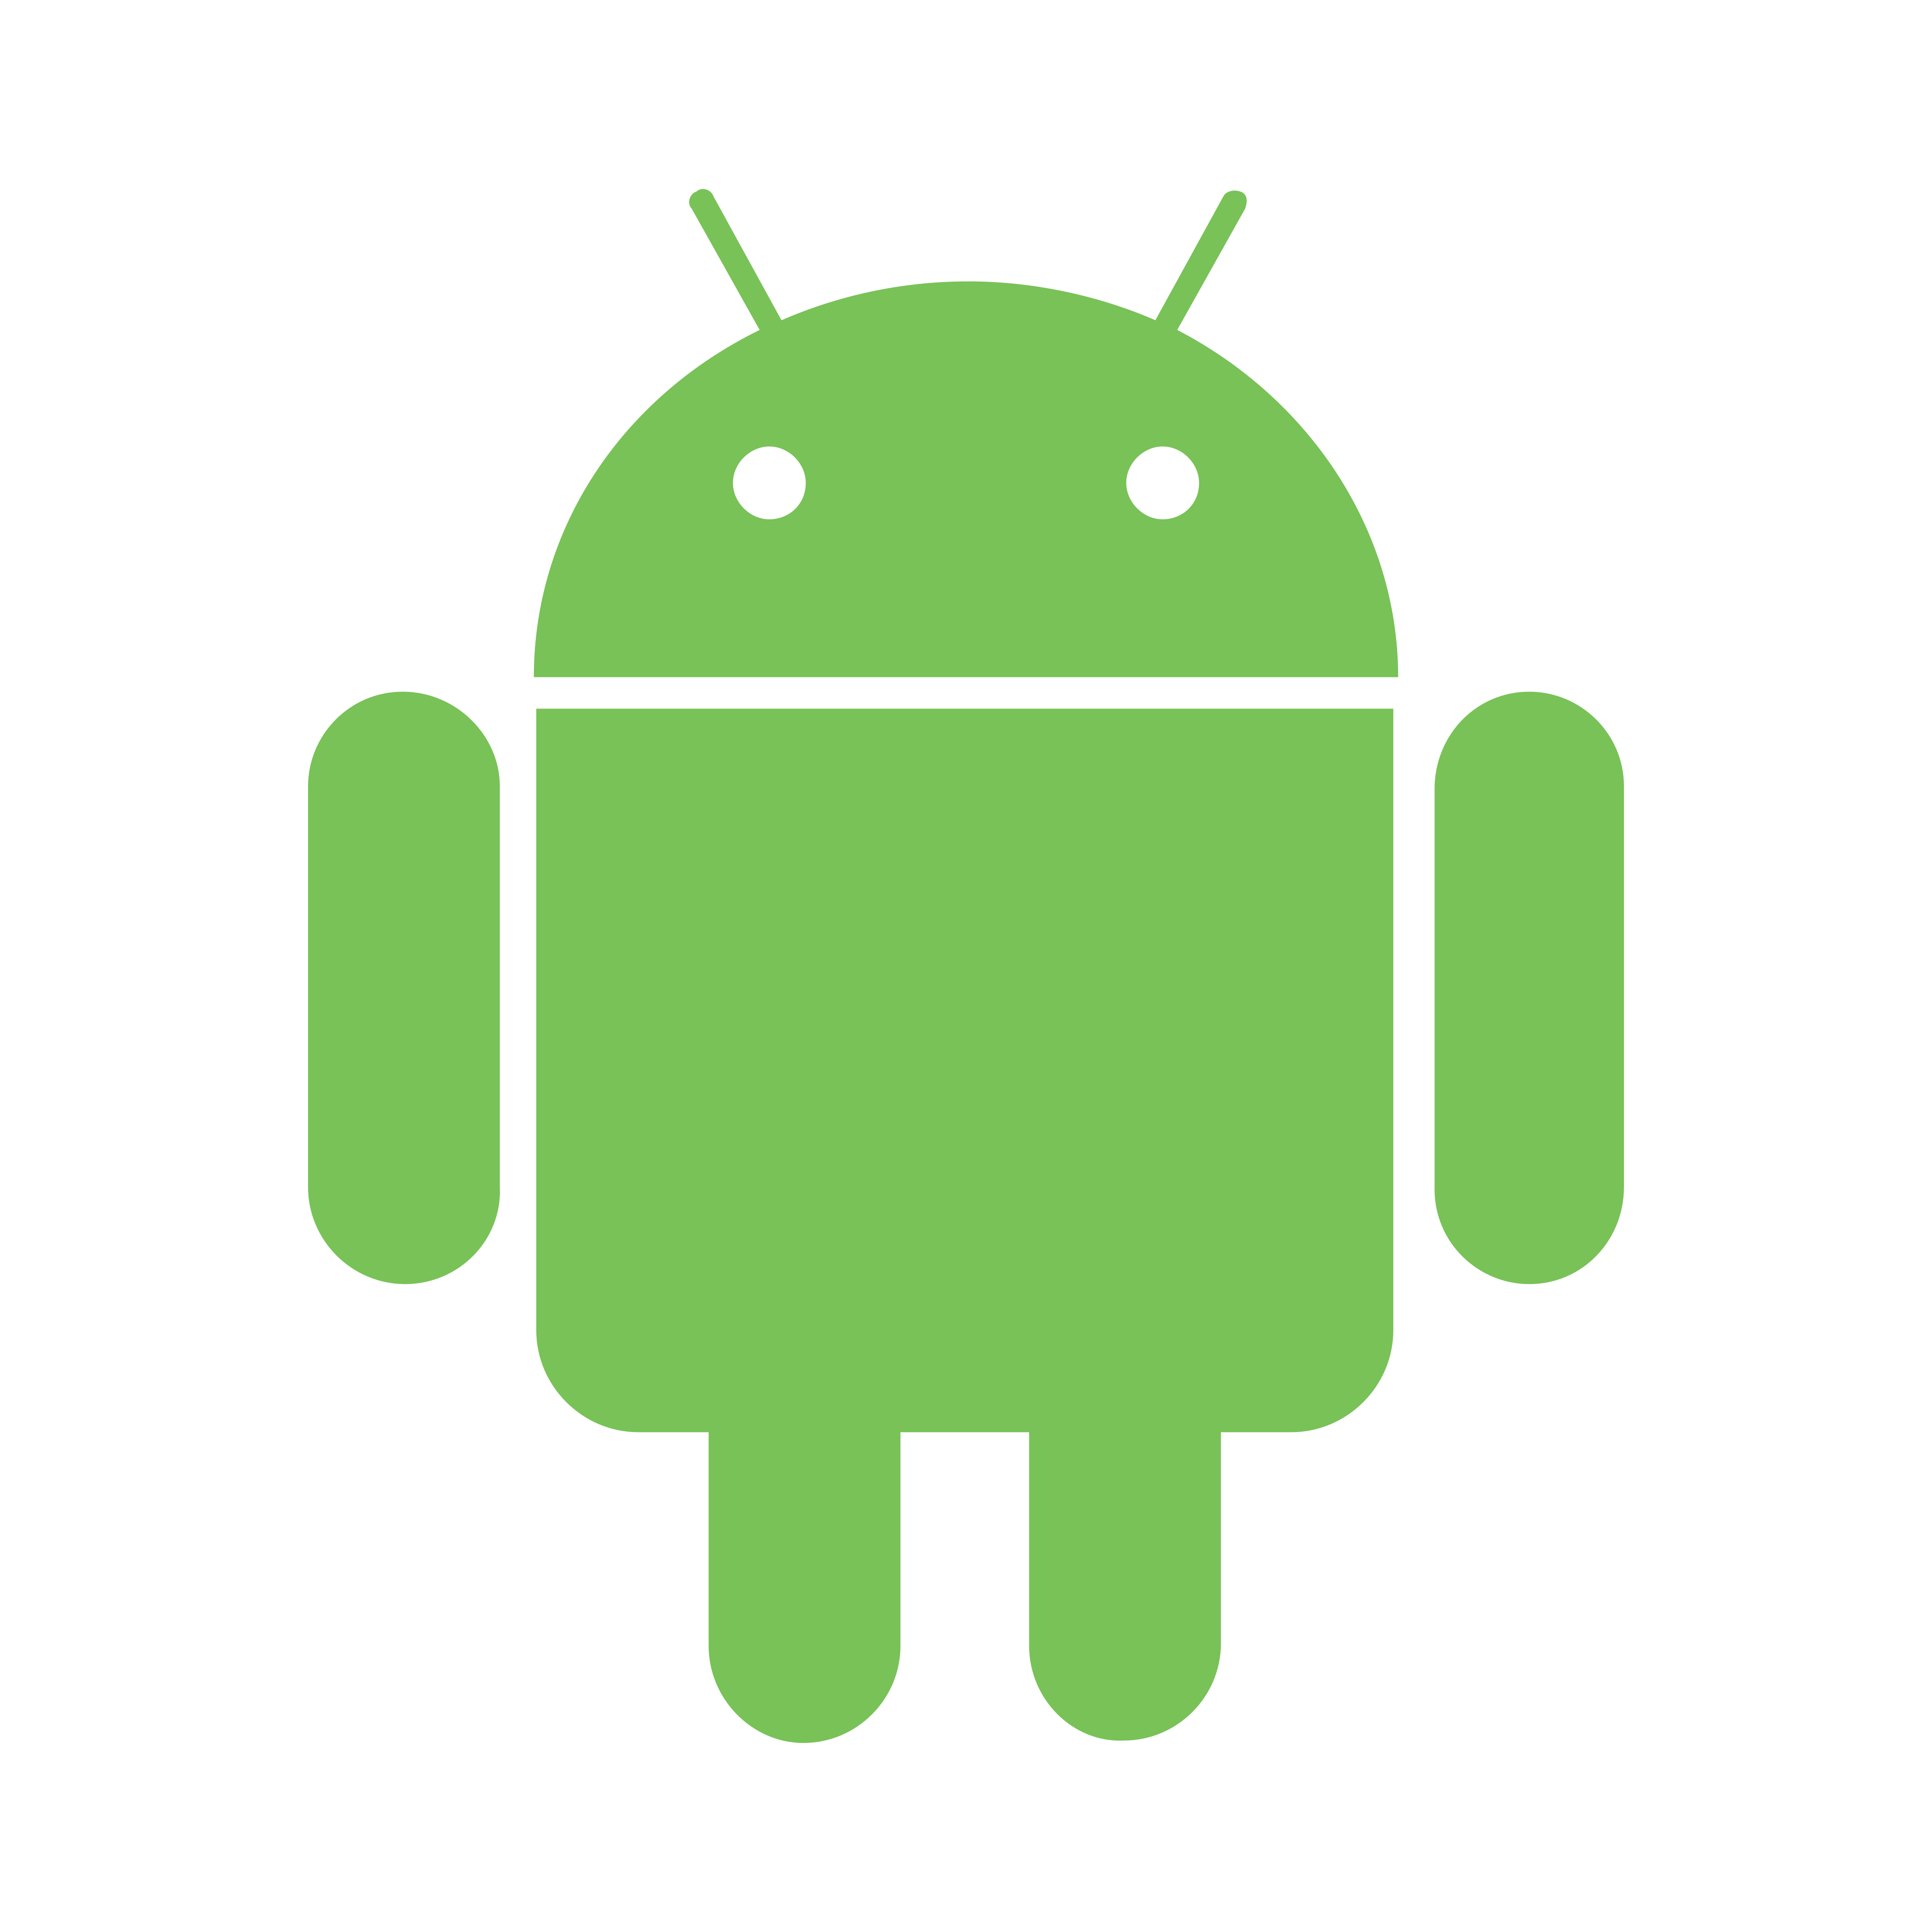 android logo 0 - Android Logo